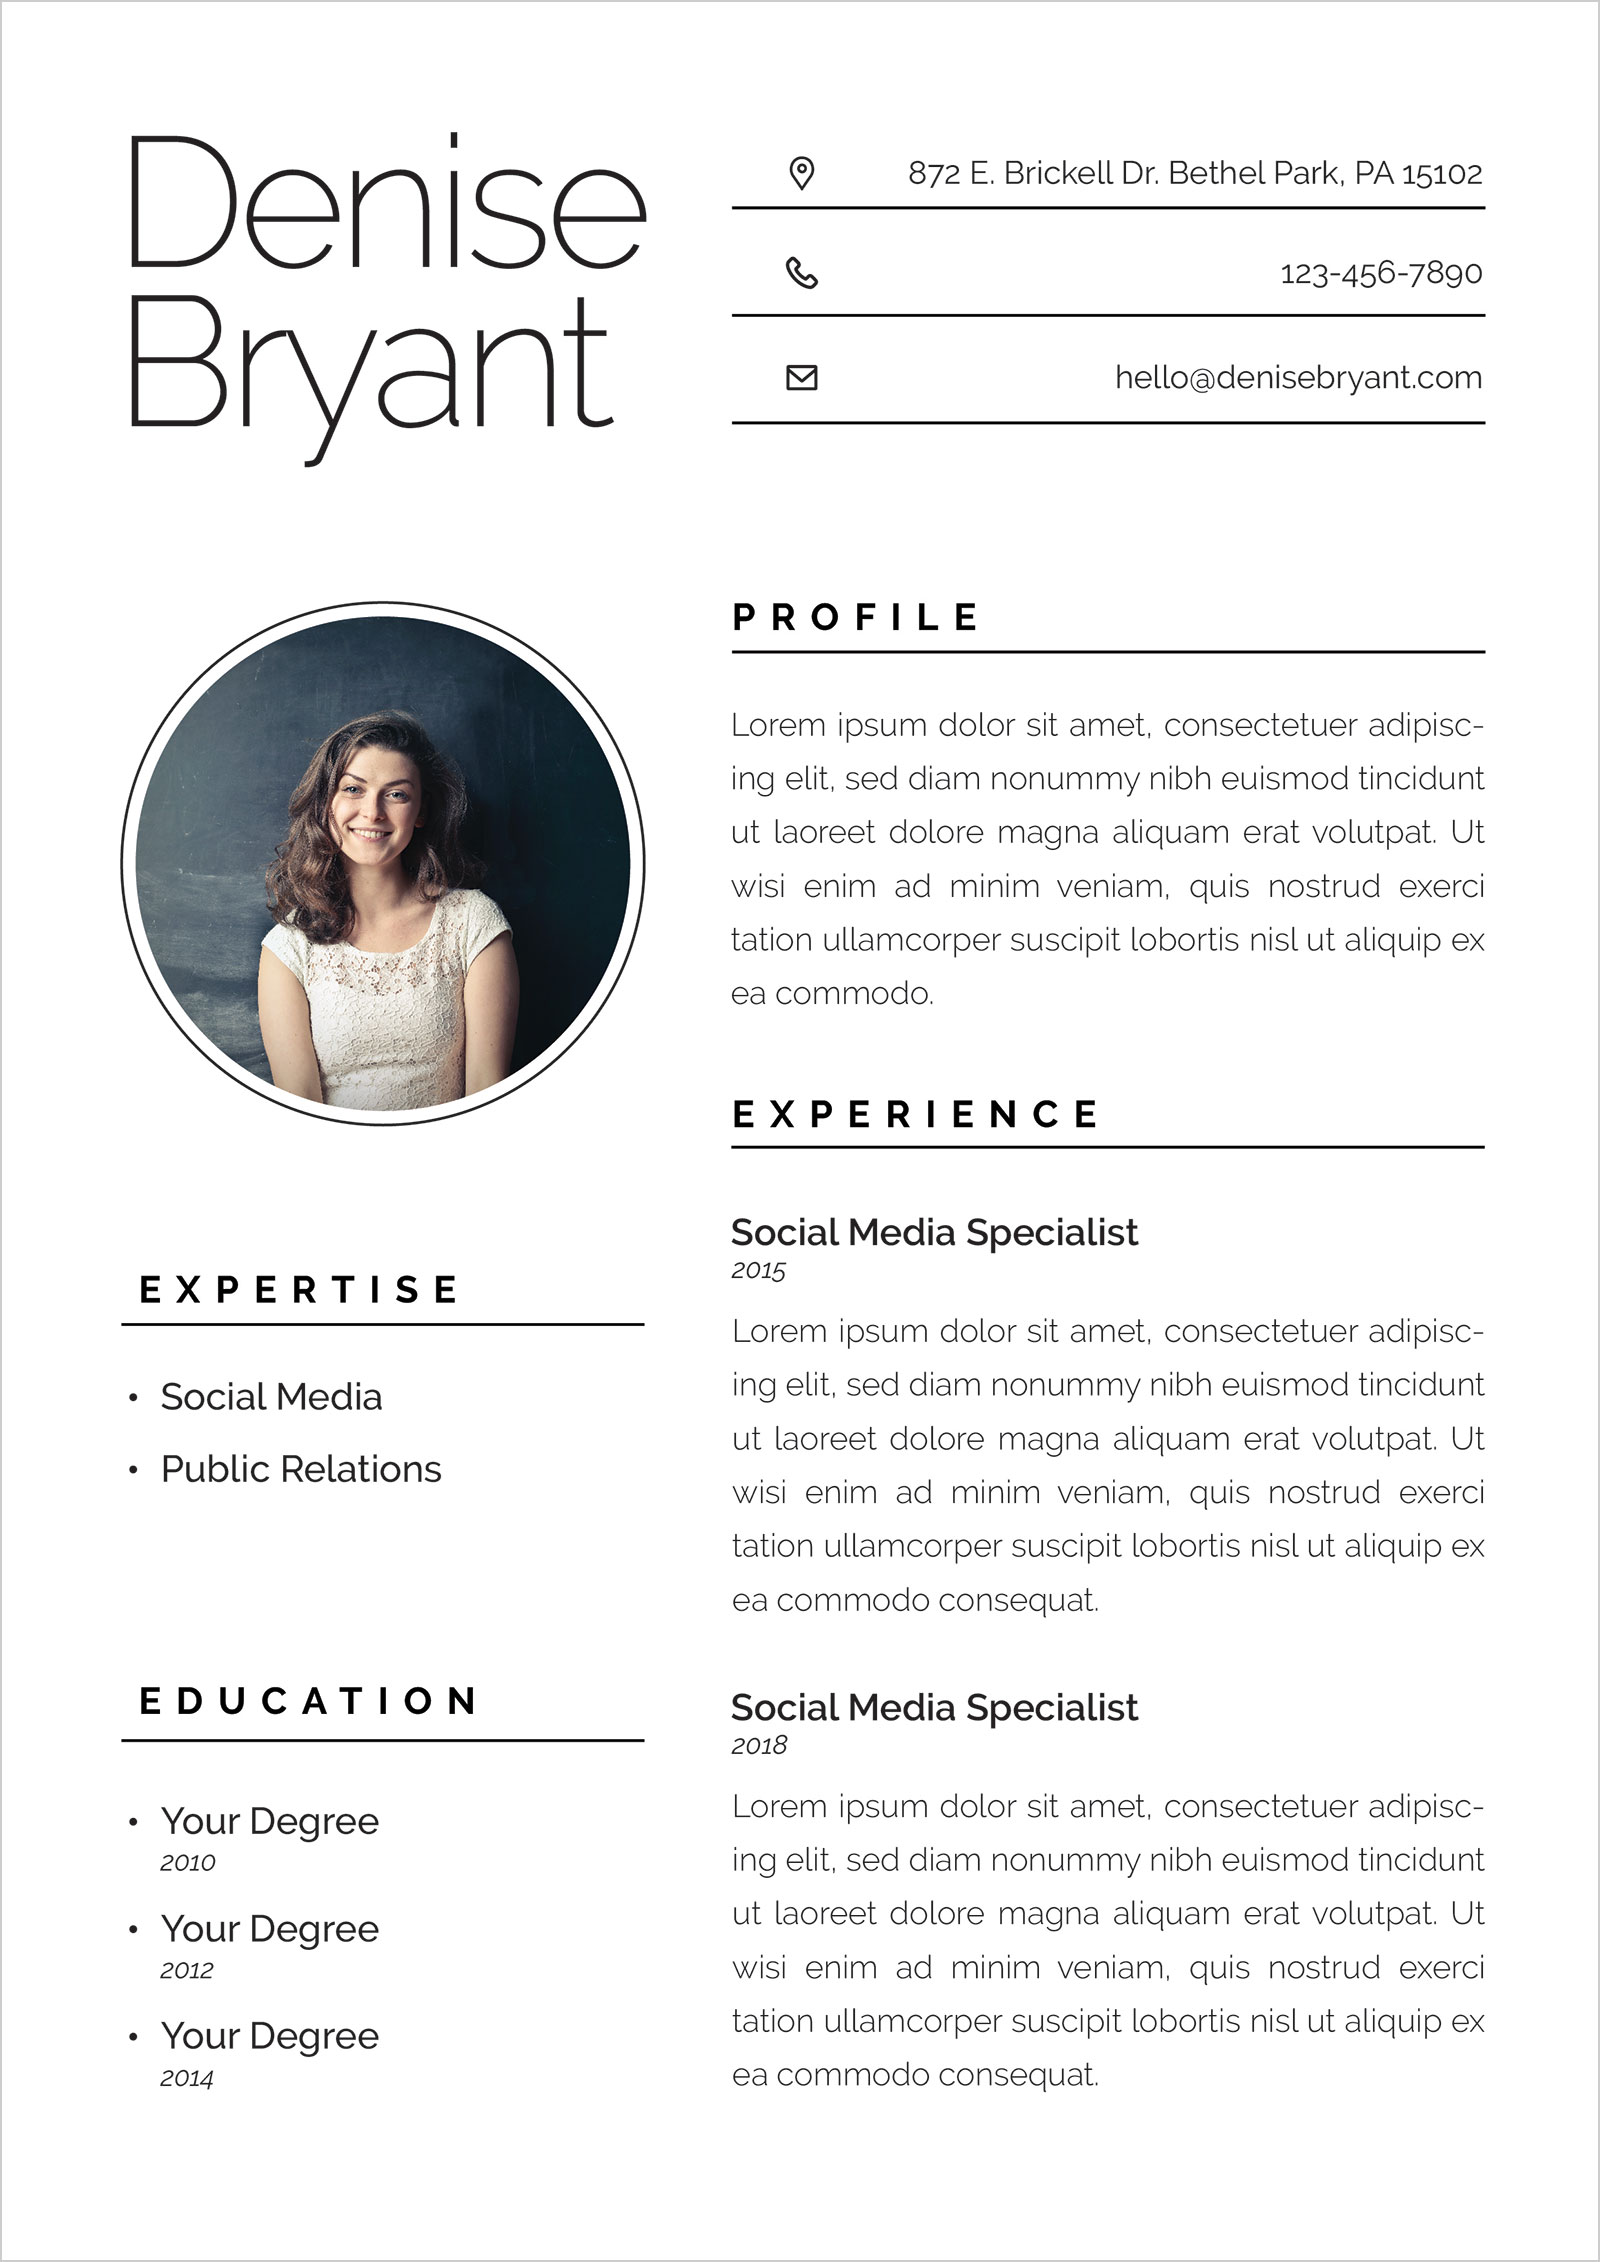 free ai resume   cv format for social media specialists  u0026 public relation officers